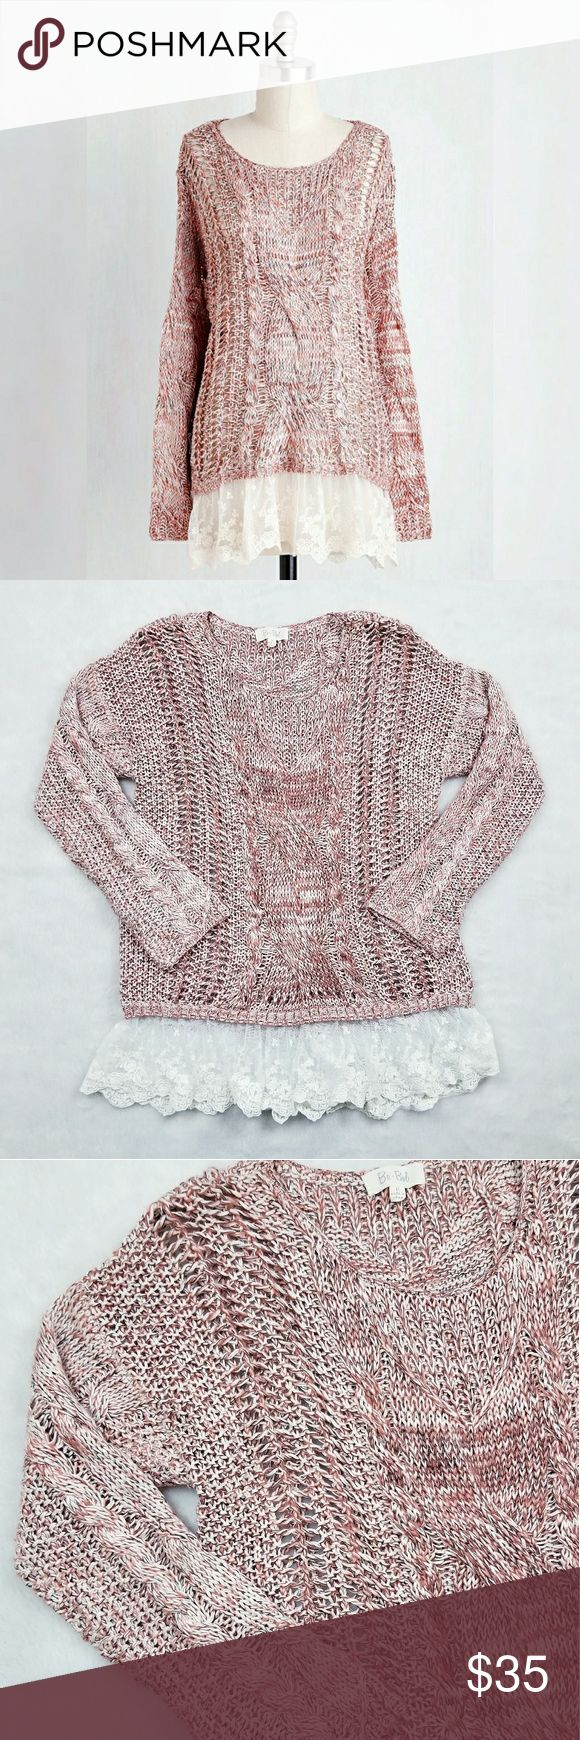 "Dusty Rose Marled Open Knit Sweater Tunic Bo•Bel Boutique brand dusty rose marled open knit sweater tunic featuring a delicate white lace trim bottom hem. Great pre-owned condition.   Approximate measurements (laying flat): Bust - 42"" Length - 29"" Sweaters"